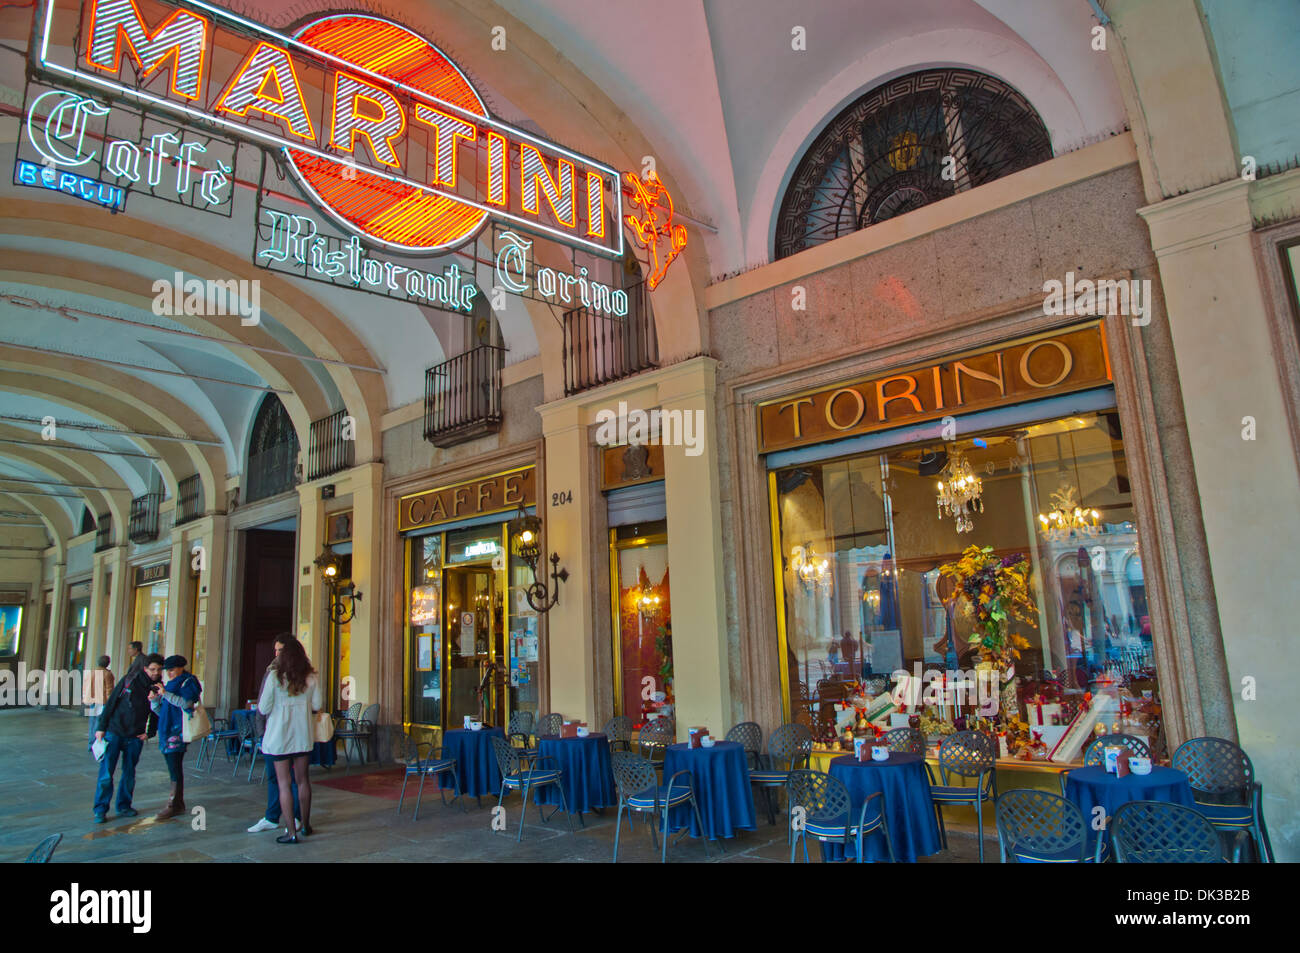 Caffe Torino grand cafe exterior Piazza San Carlo square central Turin city Piedmont region northern Italy Europe - Stock Image